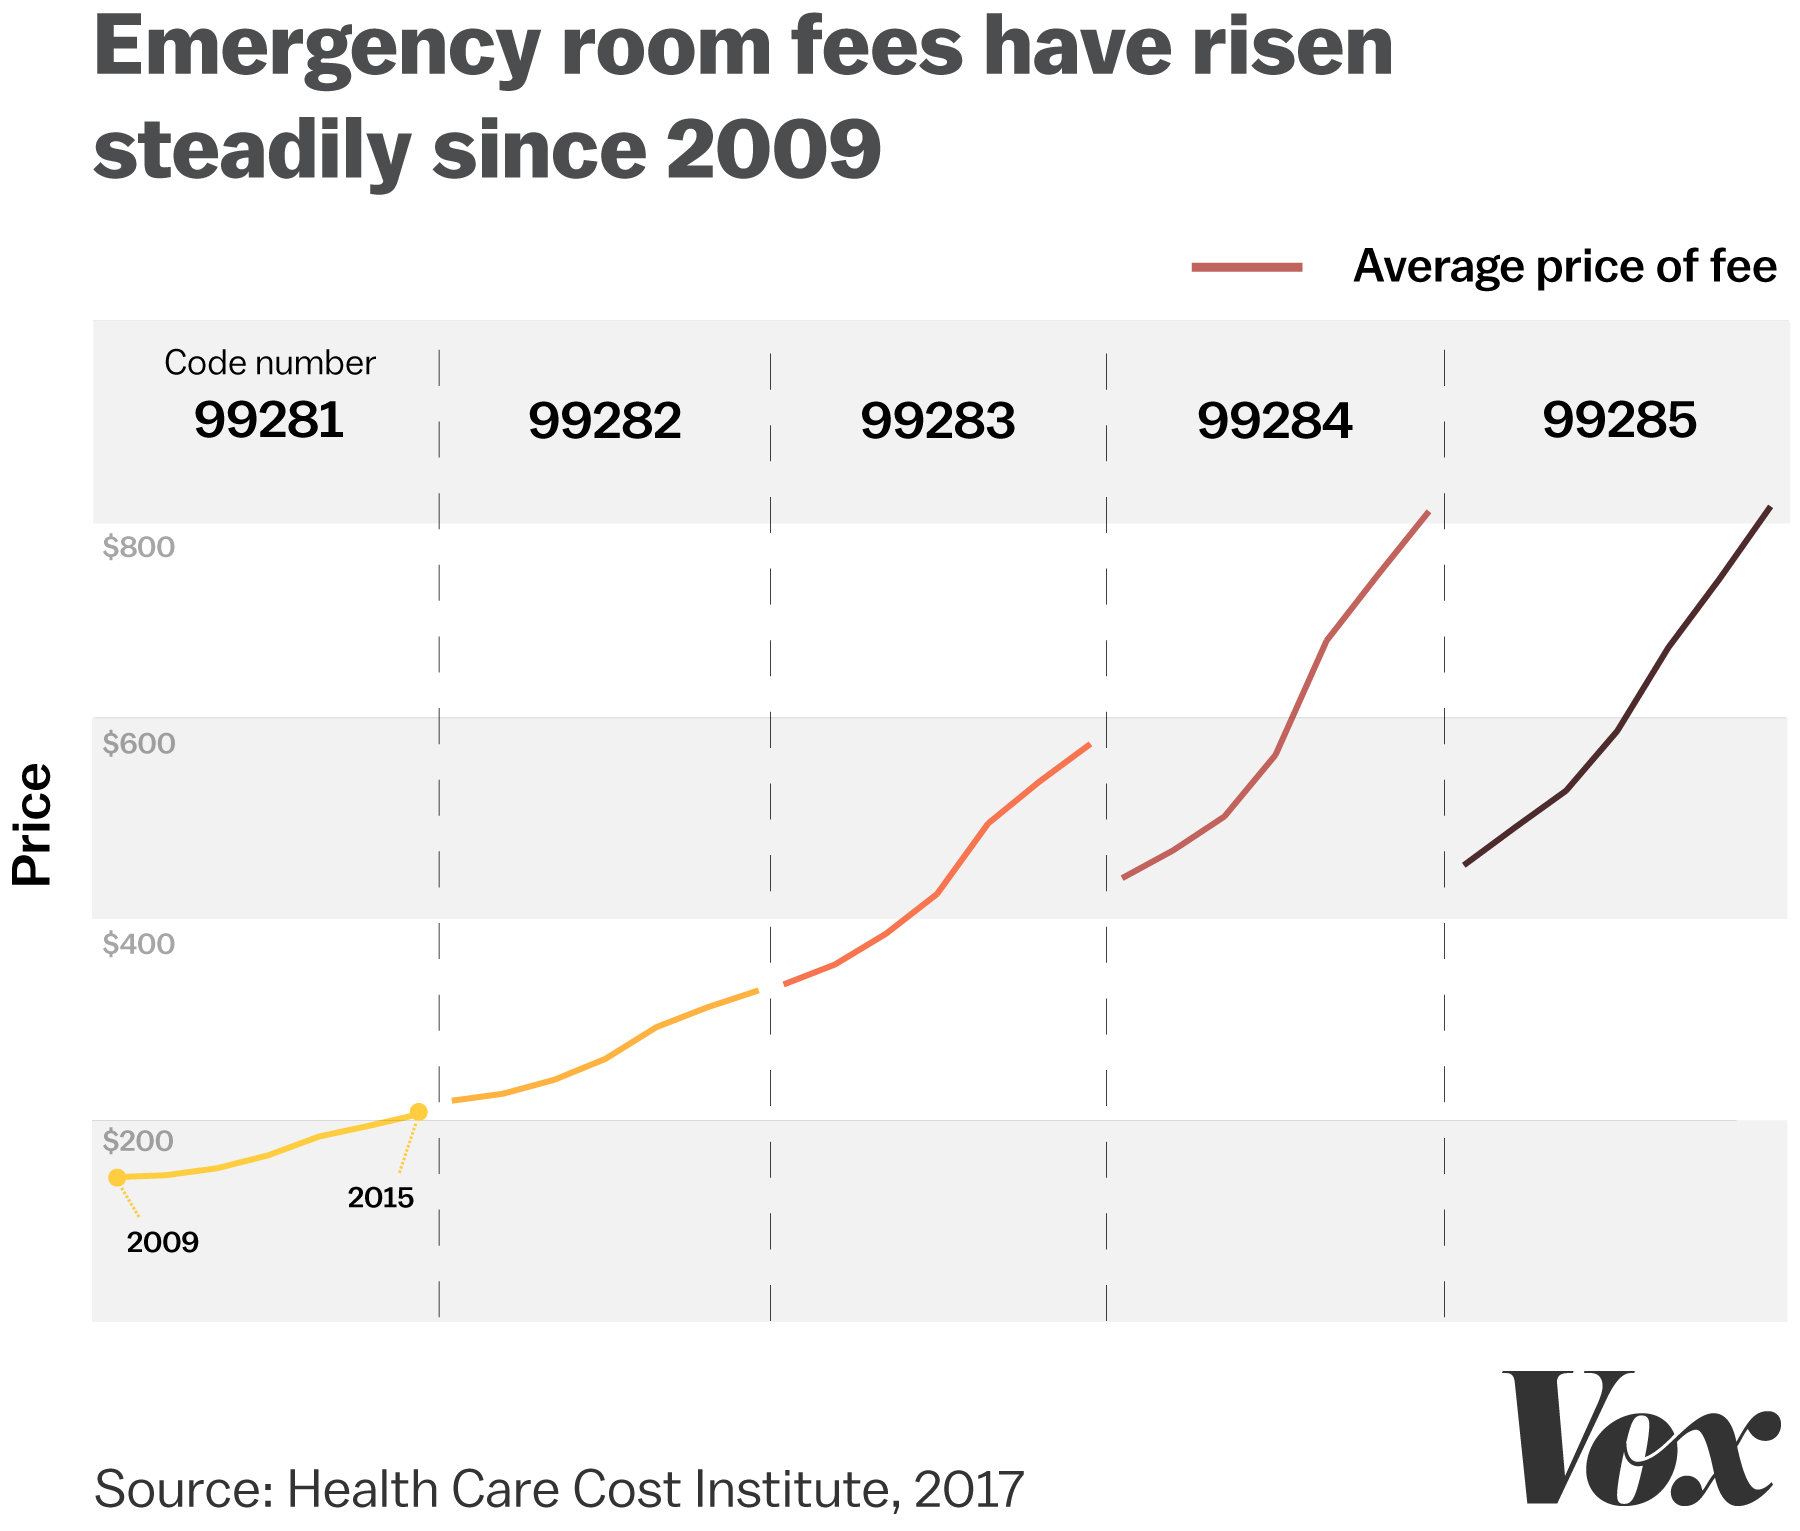 the price of facility fees has risen steadily in recent years a level 3 code 99283 now costs on average 576 a level 4 code 99284 averages 810